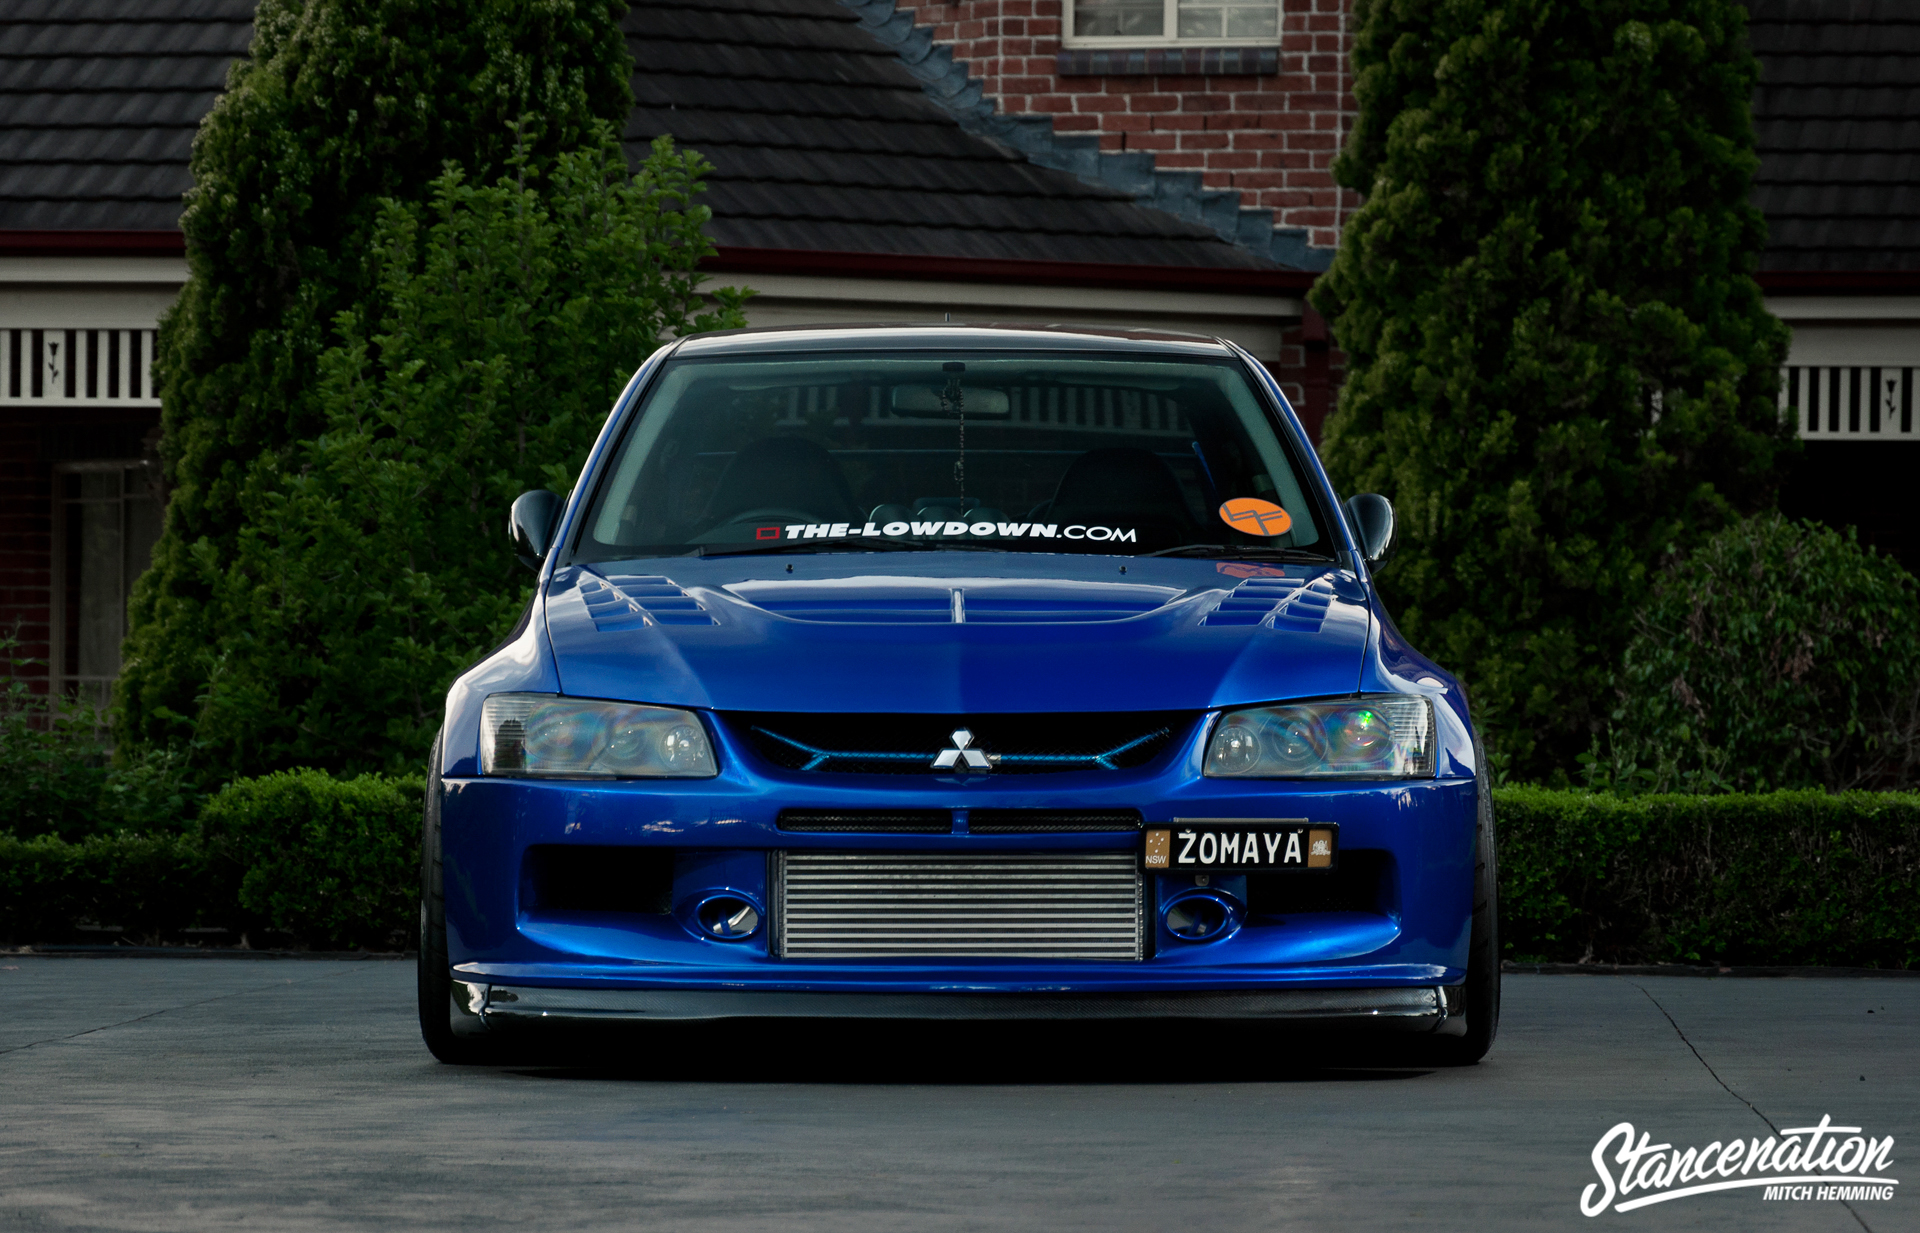 Epitome Of Modification Michael Zomaya S Widebody Evo Stancenation Form Gt Function